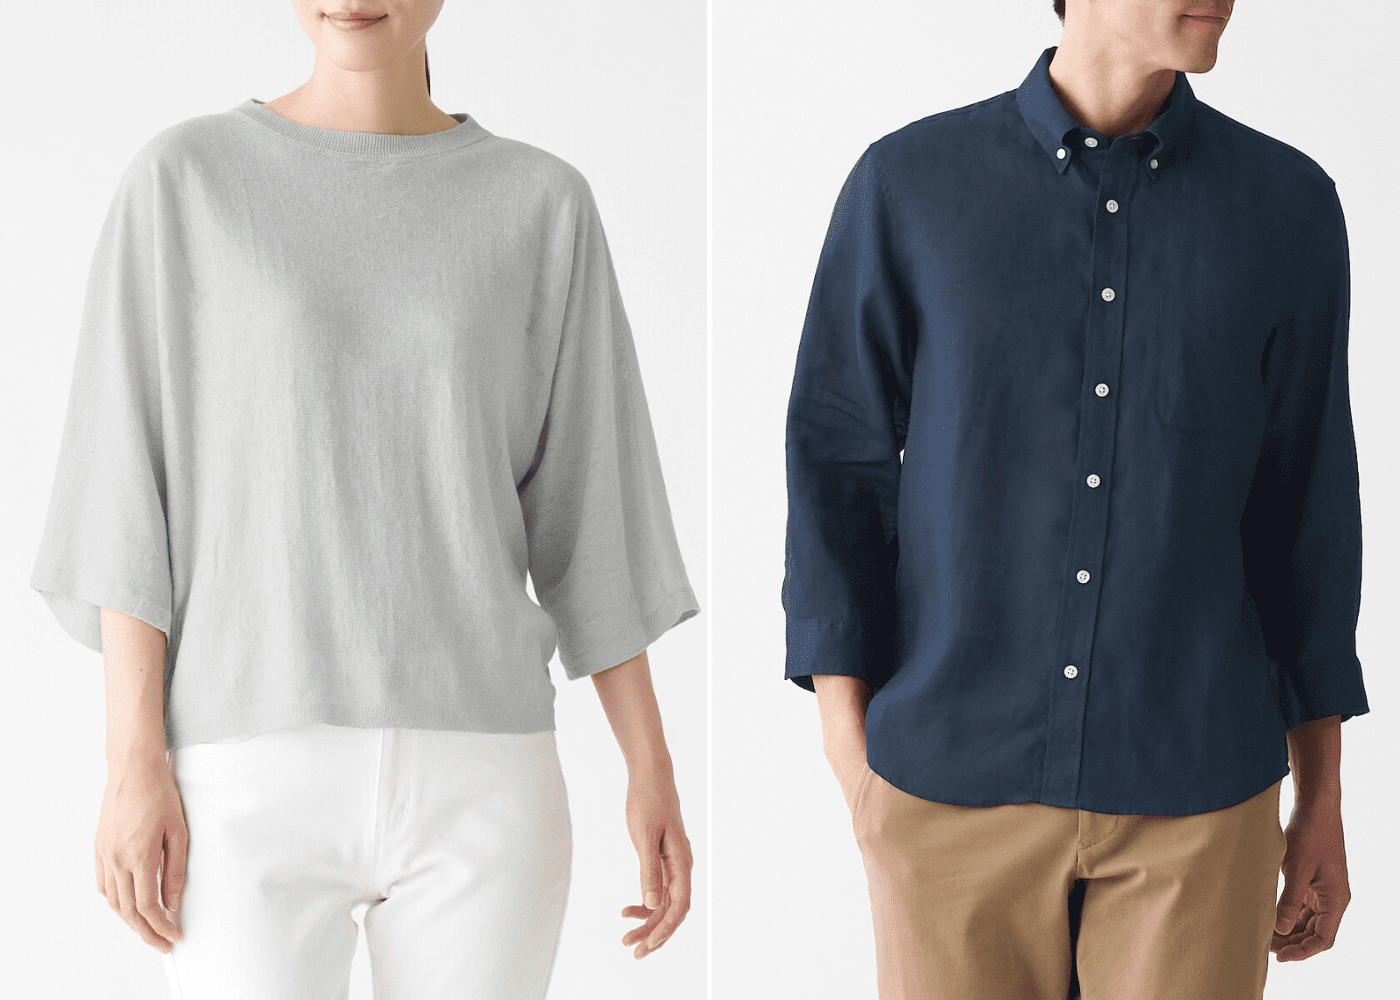 Calling all shopaholics! Build your minimalist wardrobe with Muji's latest Spring/Summer collection